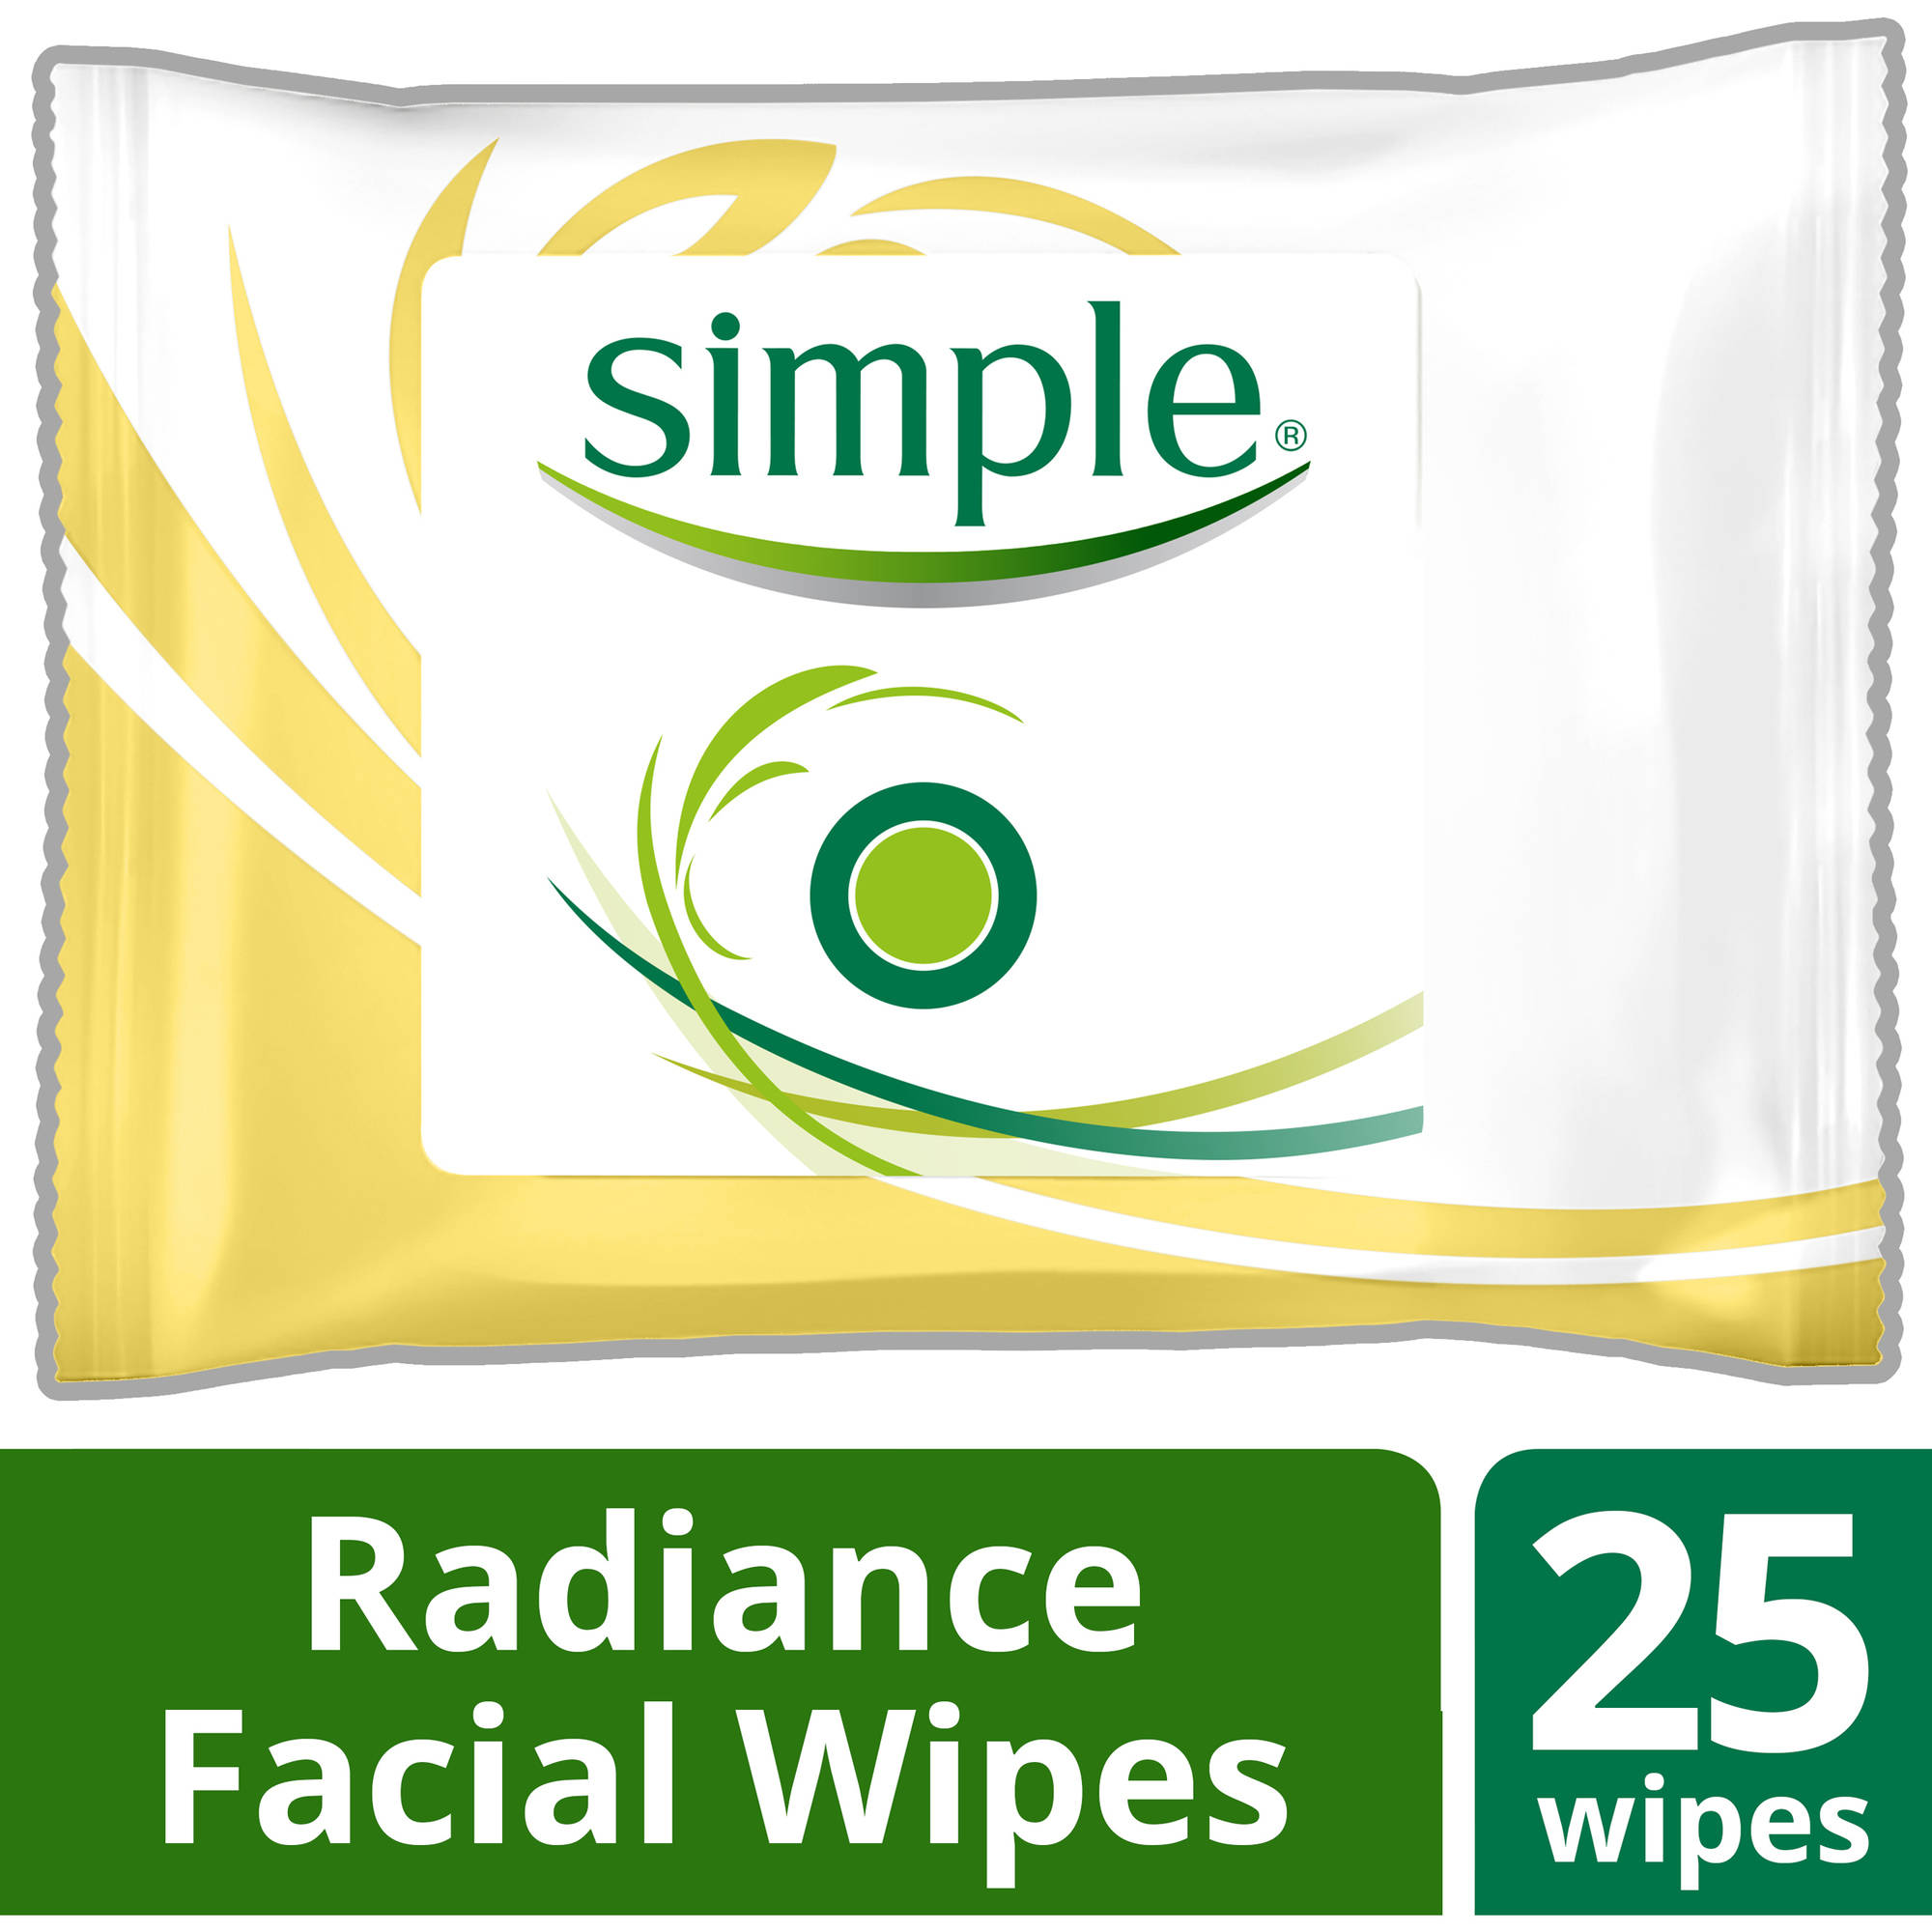 Simple Radiance Cleansing Facial Wipes, 25 ct